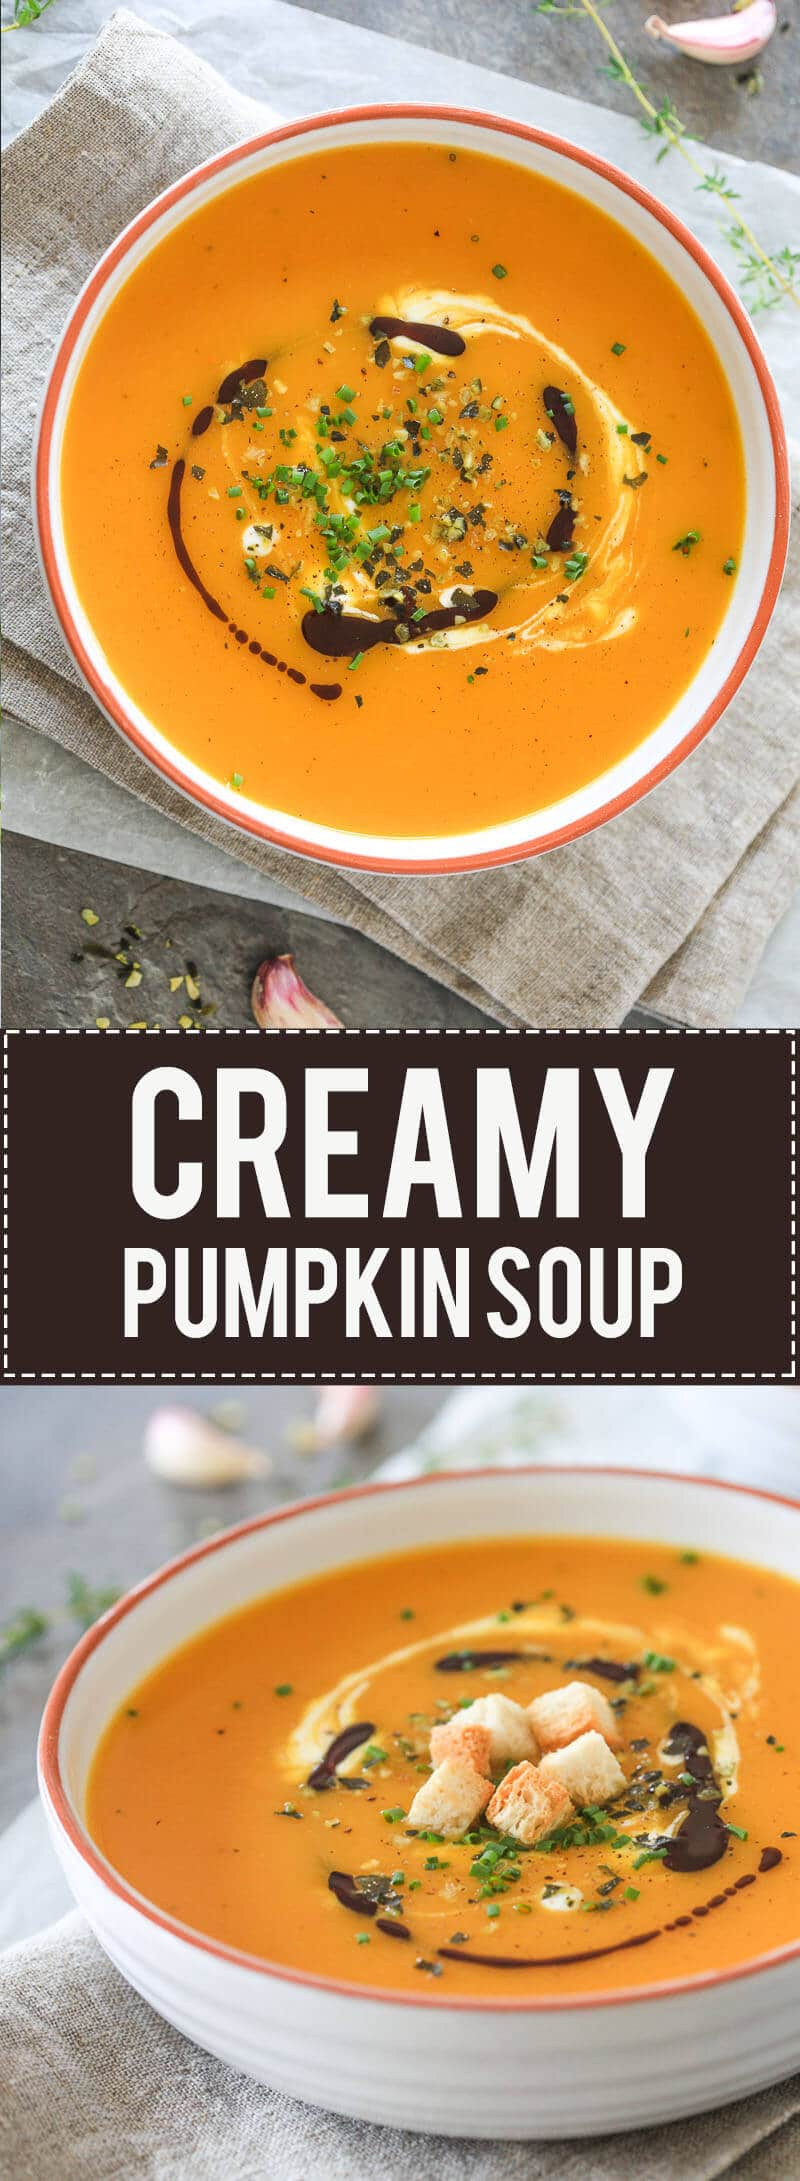 Nothing says Autumn more than a bowl of steamy & delicious pumpkin soup. Made from Red Kuri squash in just 15 minutes!